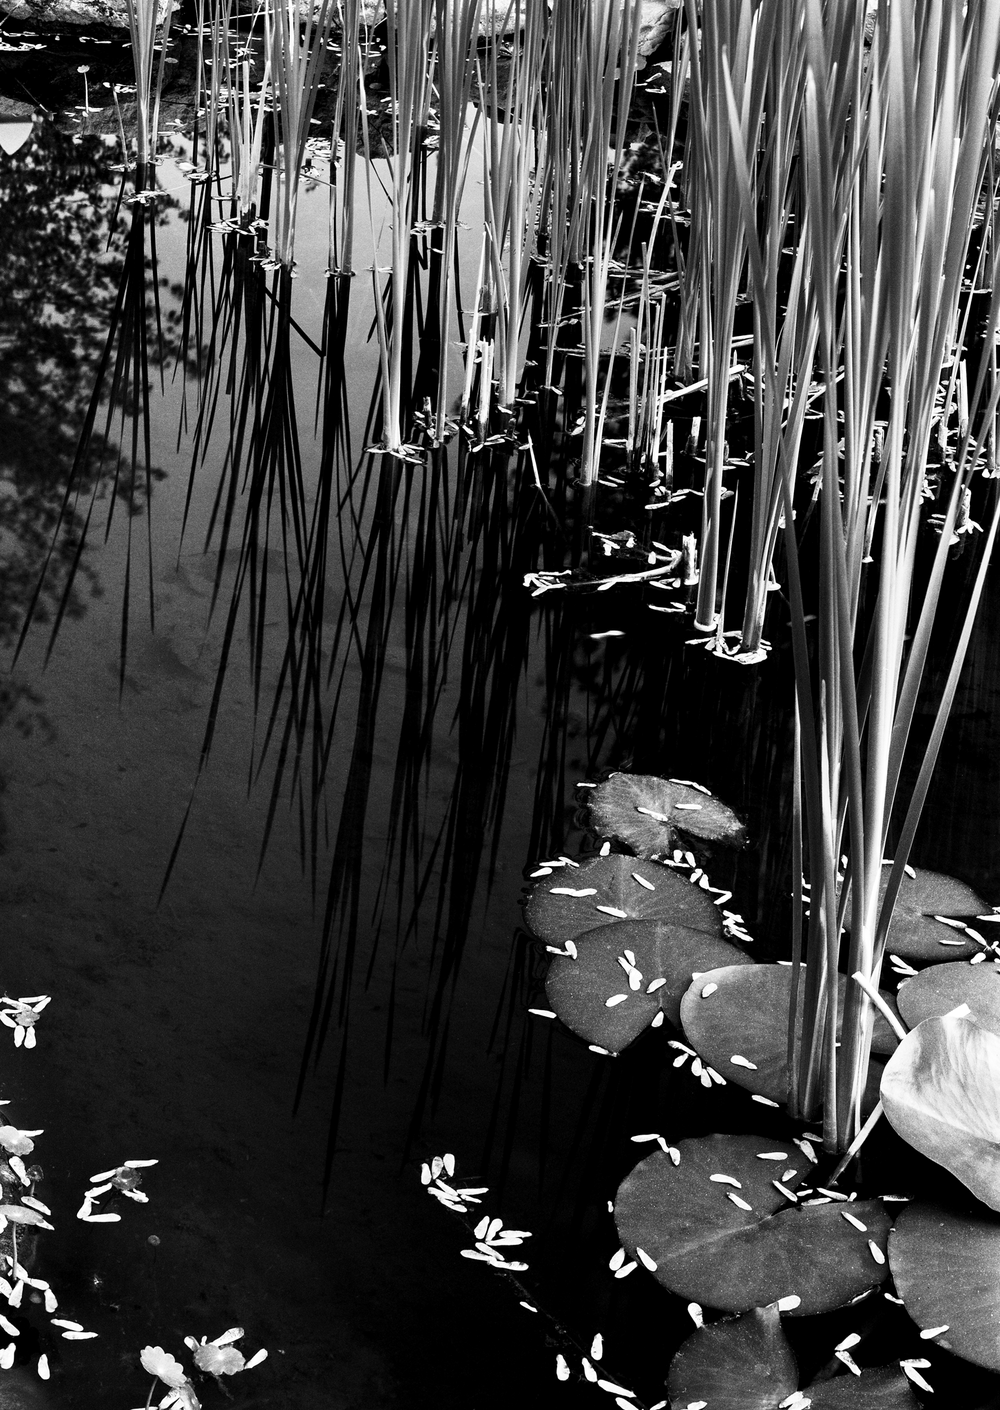 4x5_for_365_project_0139_Pond_cattails.png